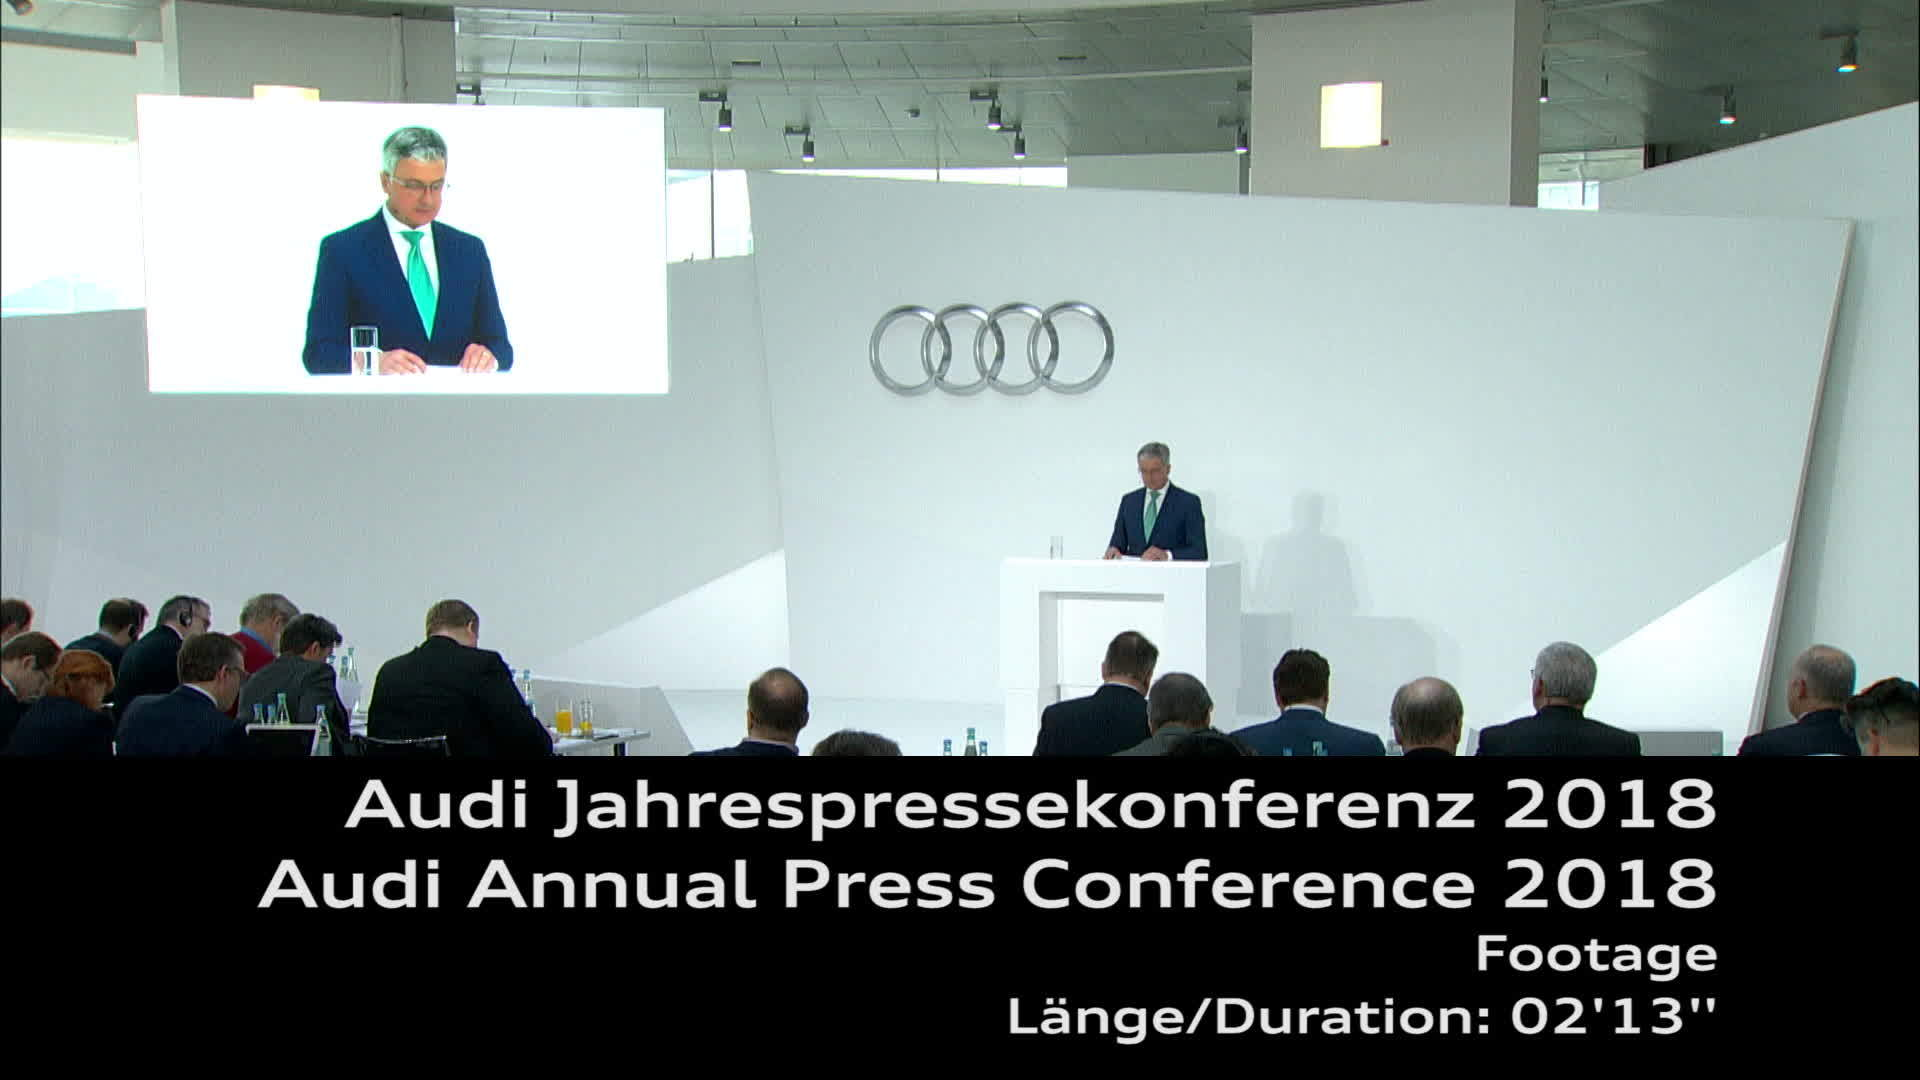 Audi Annual Press Conference 2018 Footage